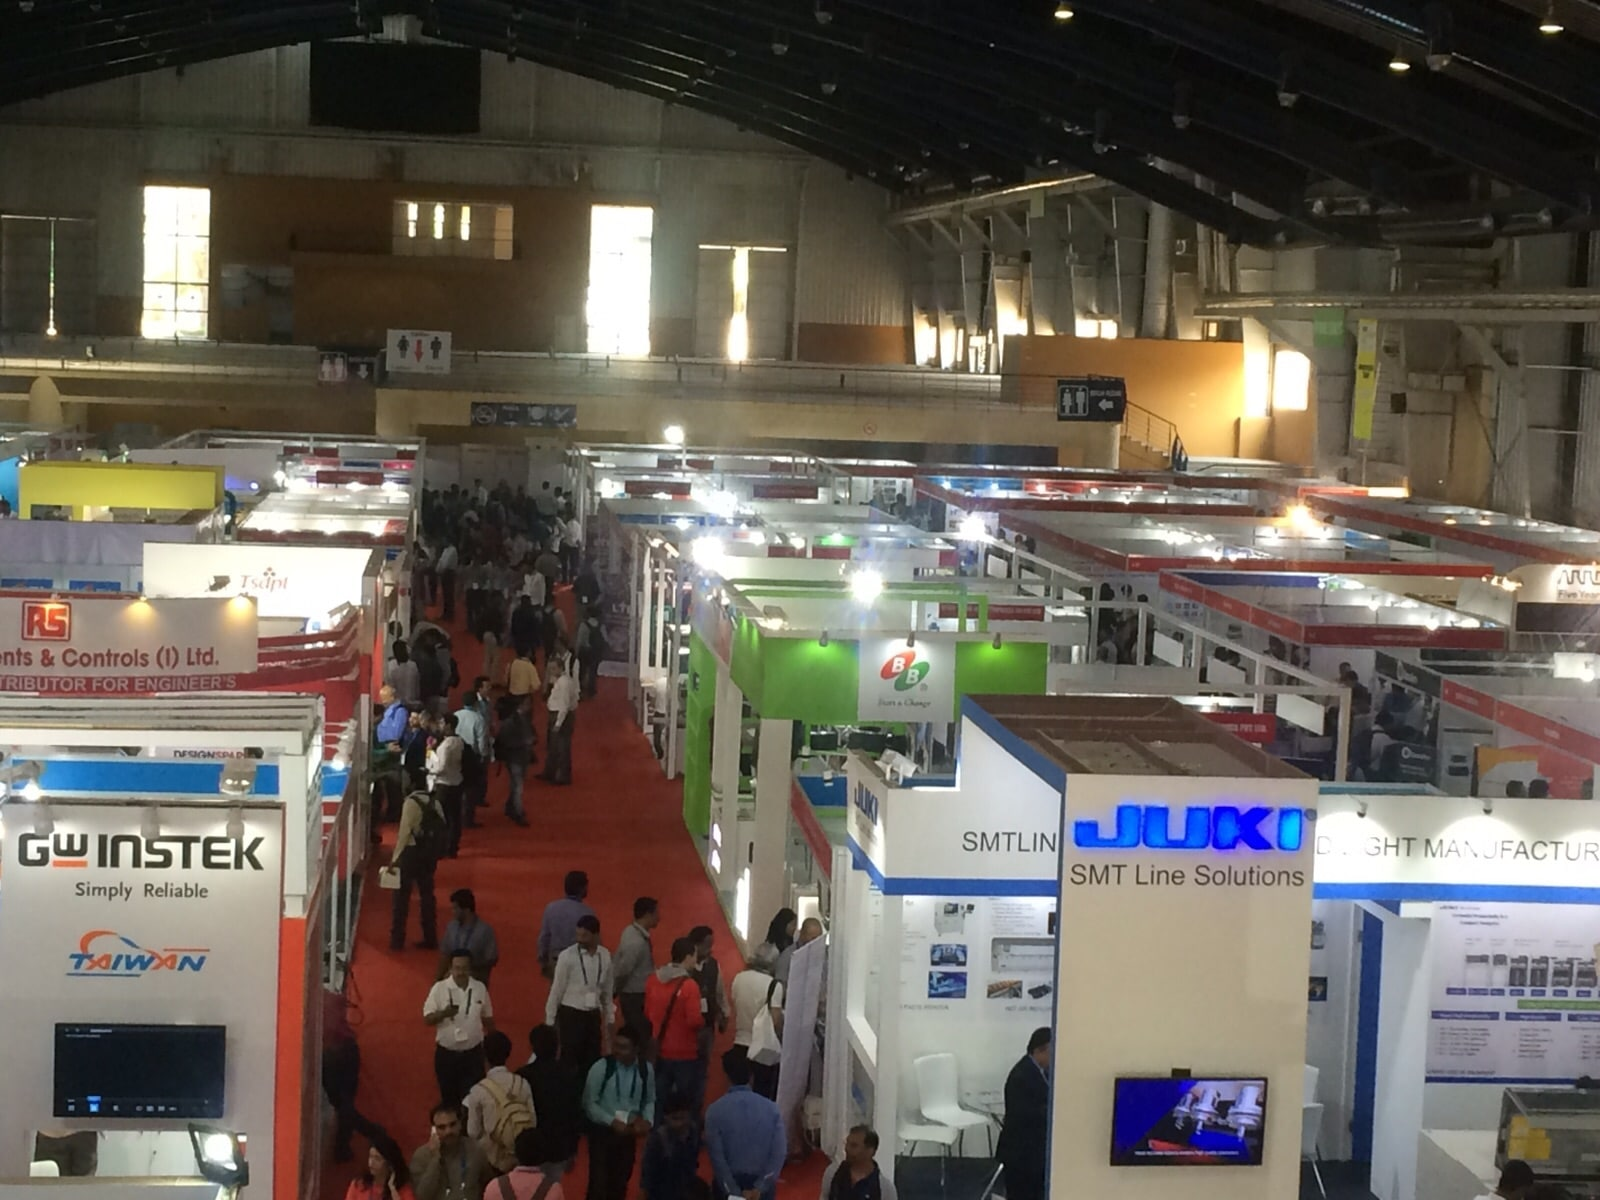 Exhibition for Business